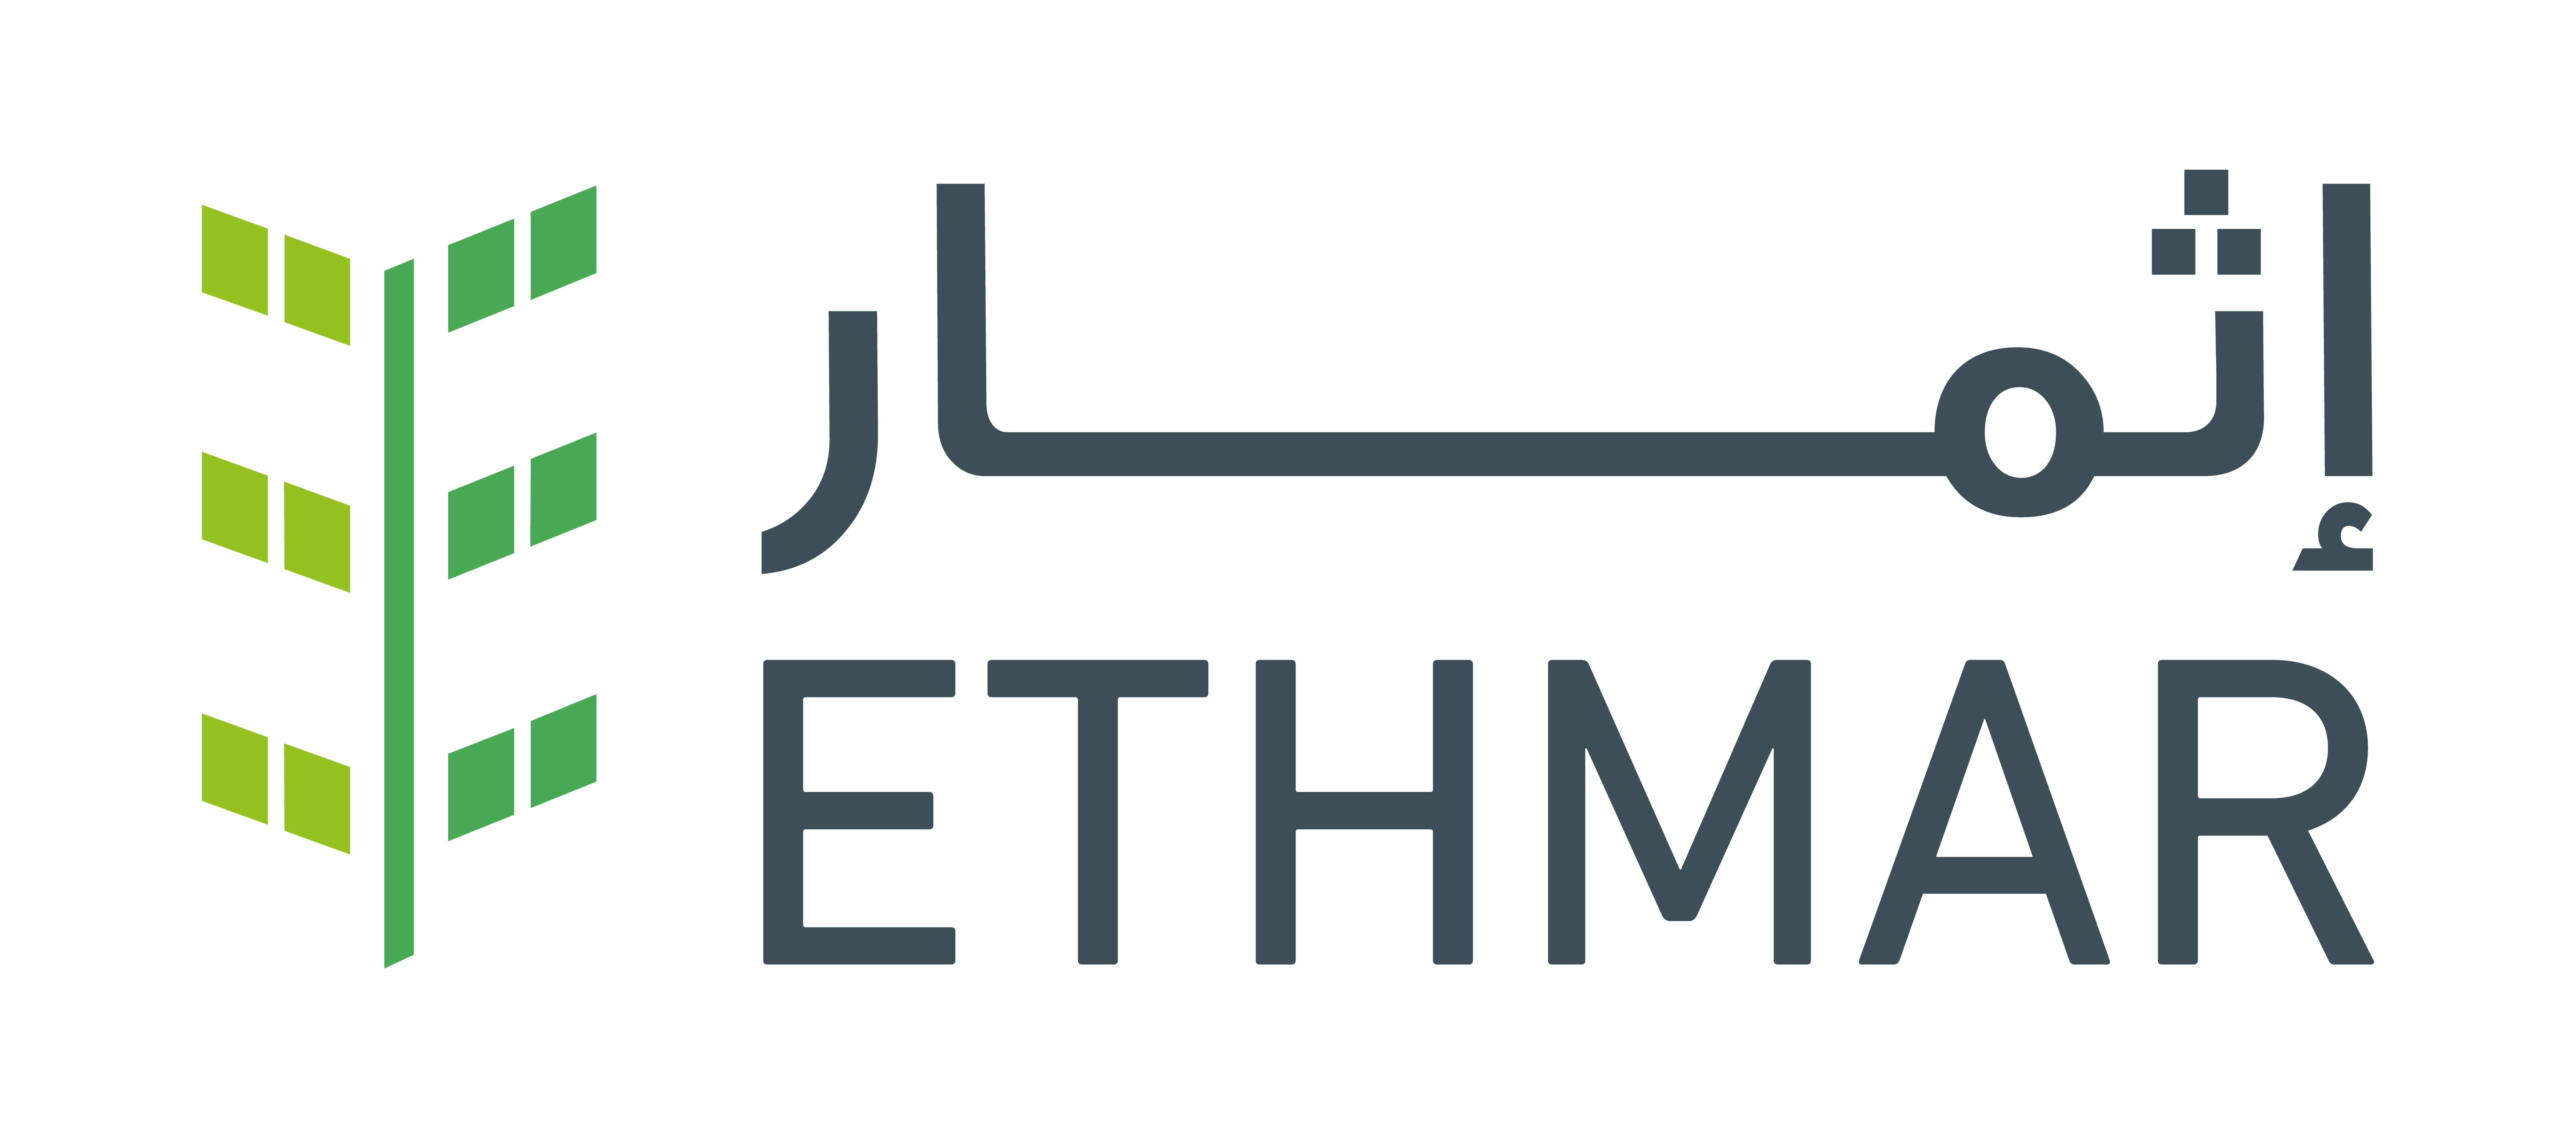 ETHMAR-ETHMAR REAL ESTATE